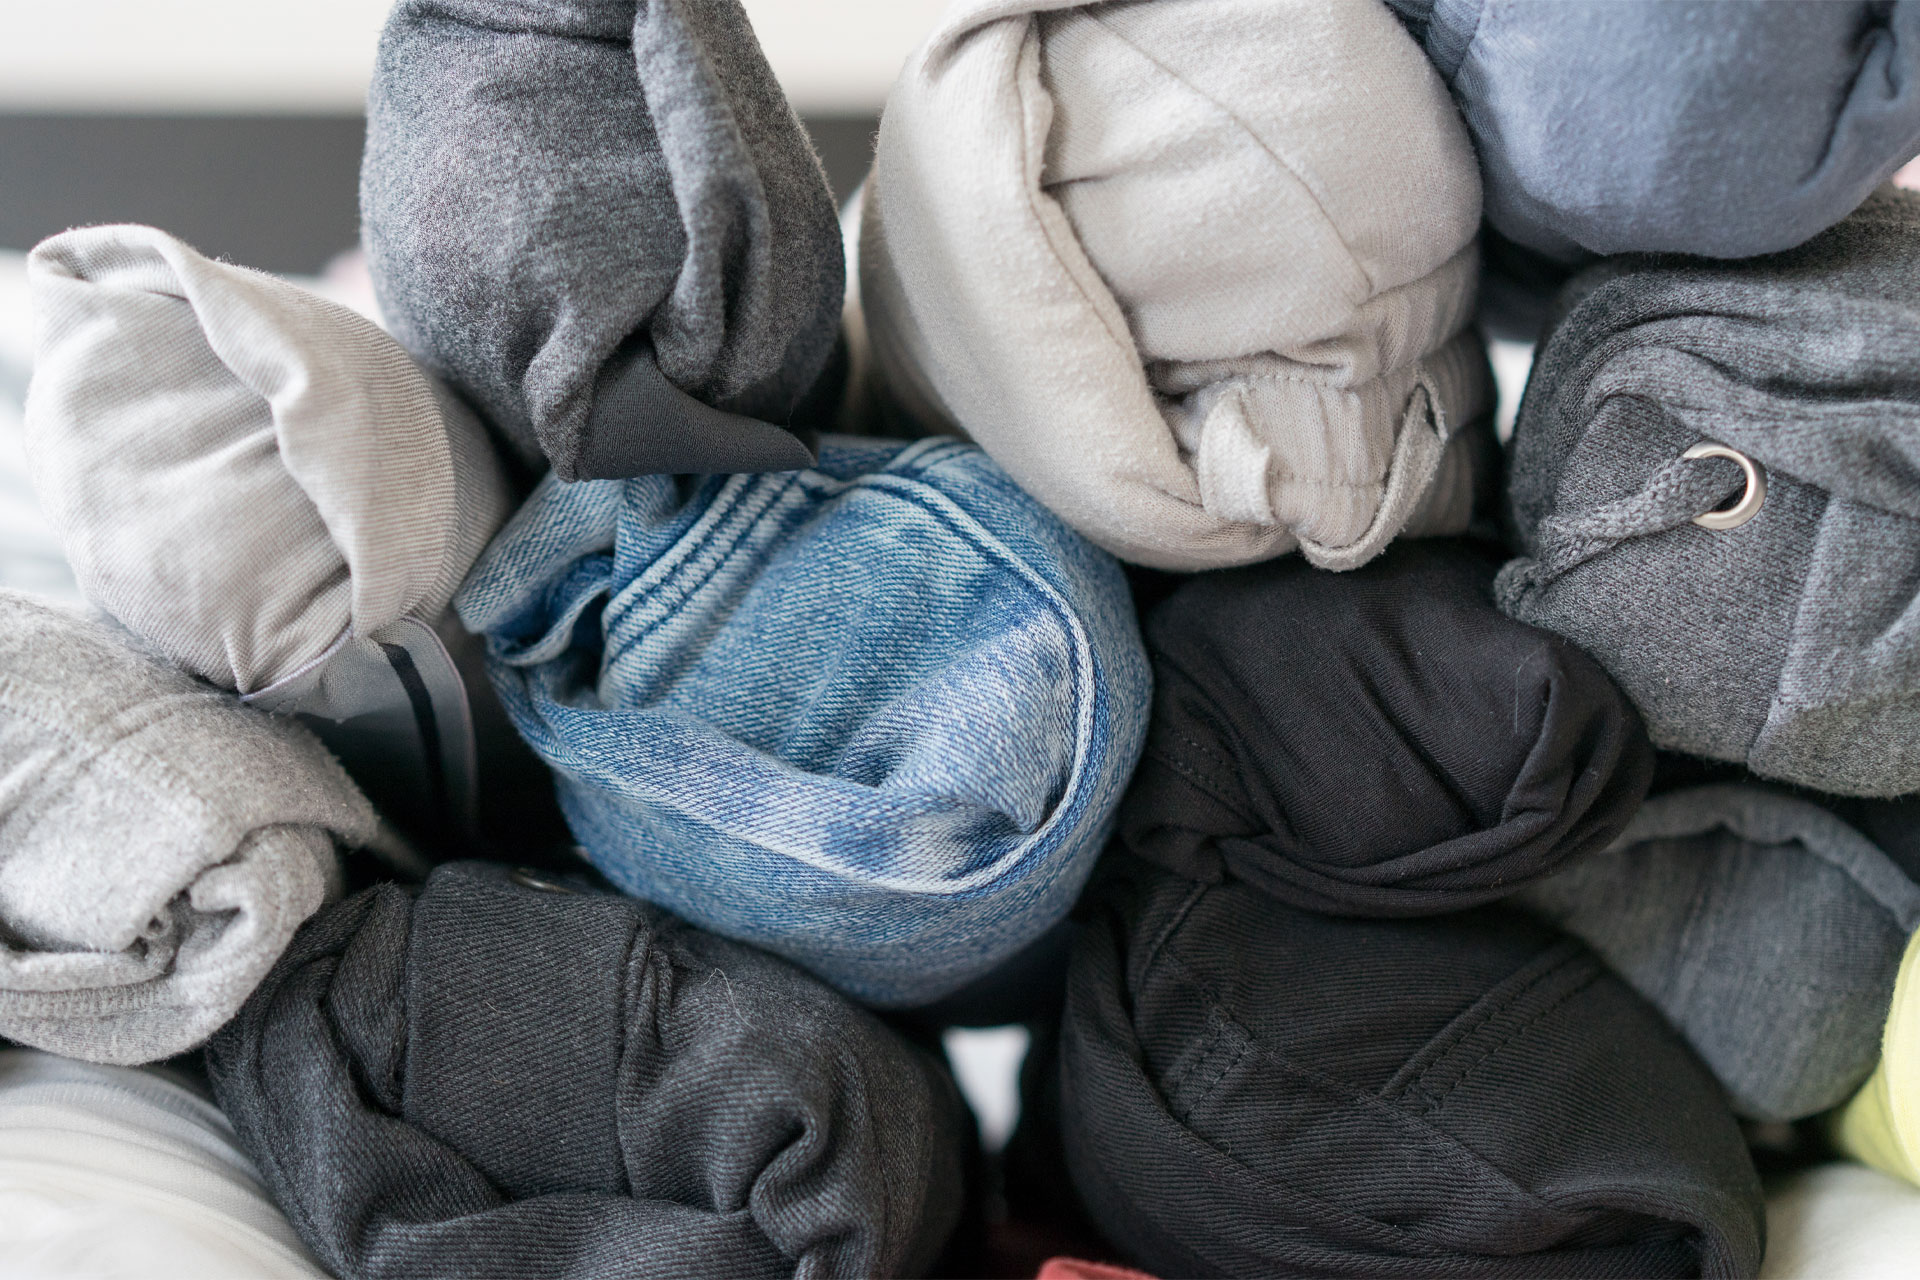 Rolled Clothes; Courtesy of BBPPHOTO/Shutterstock.com